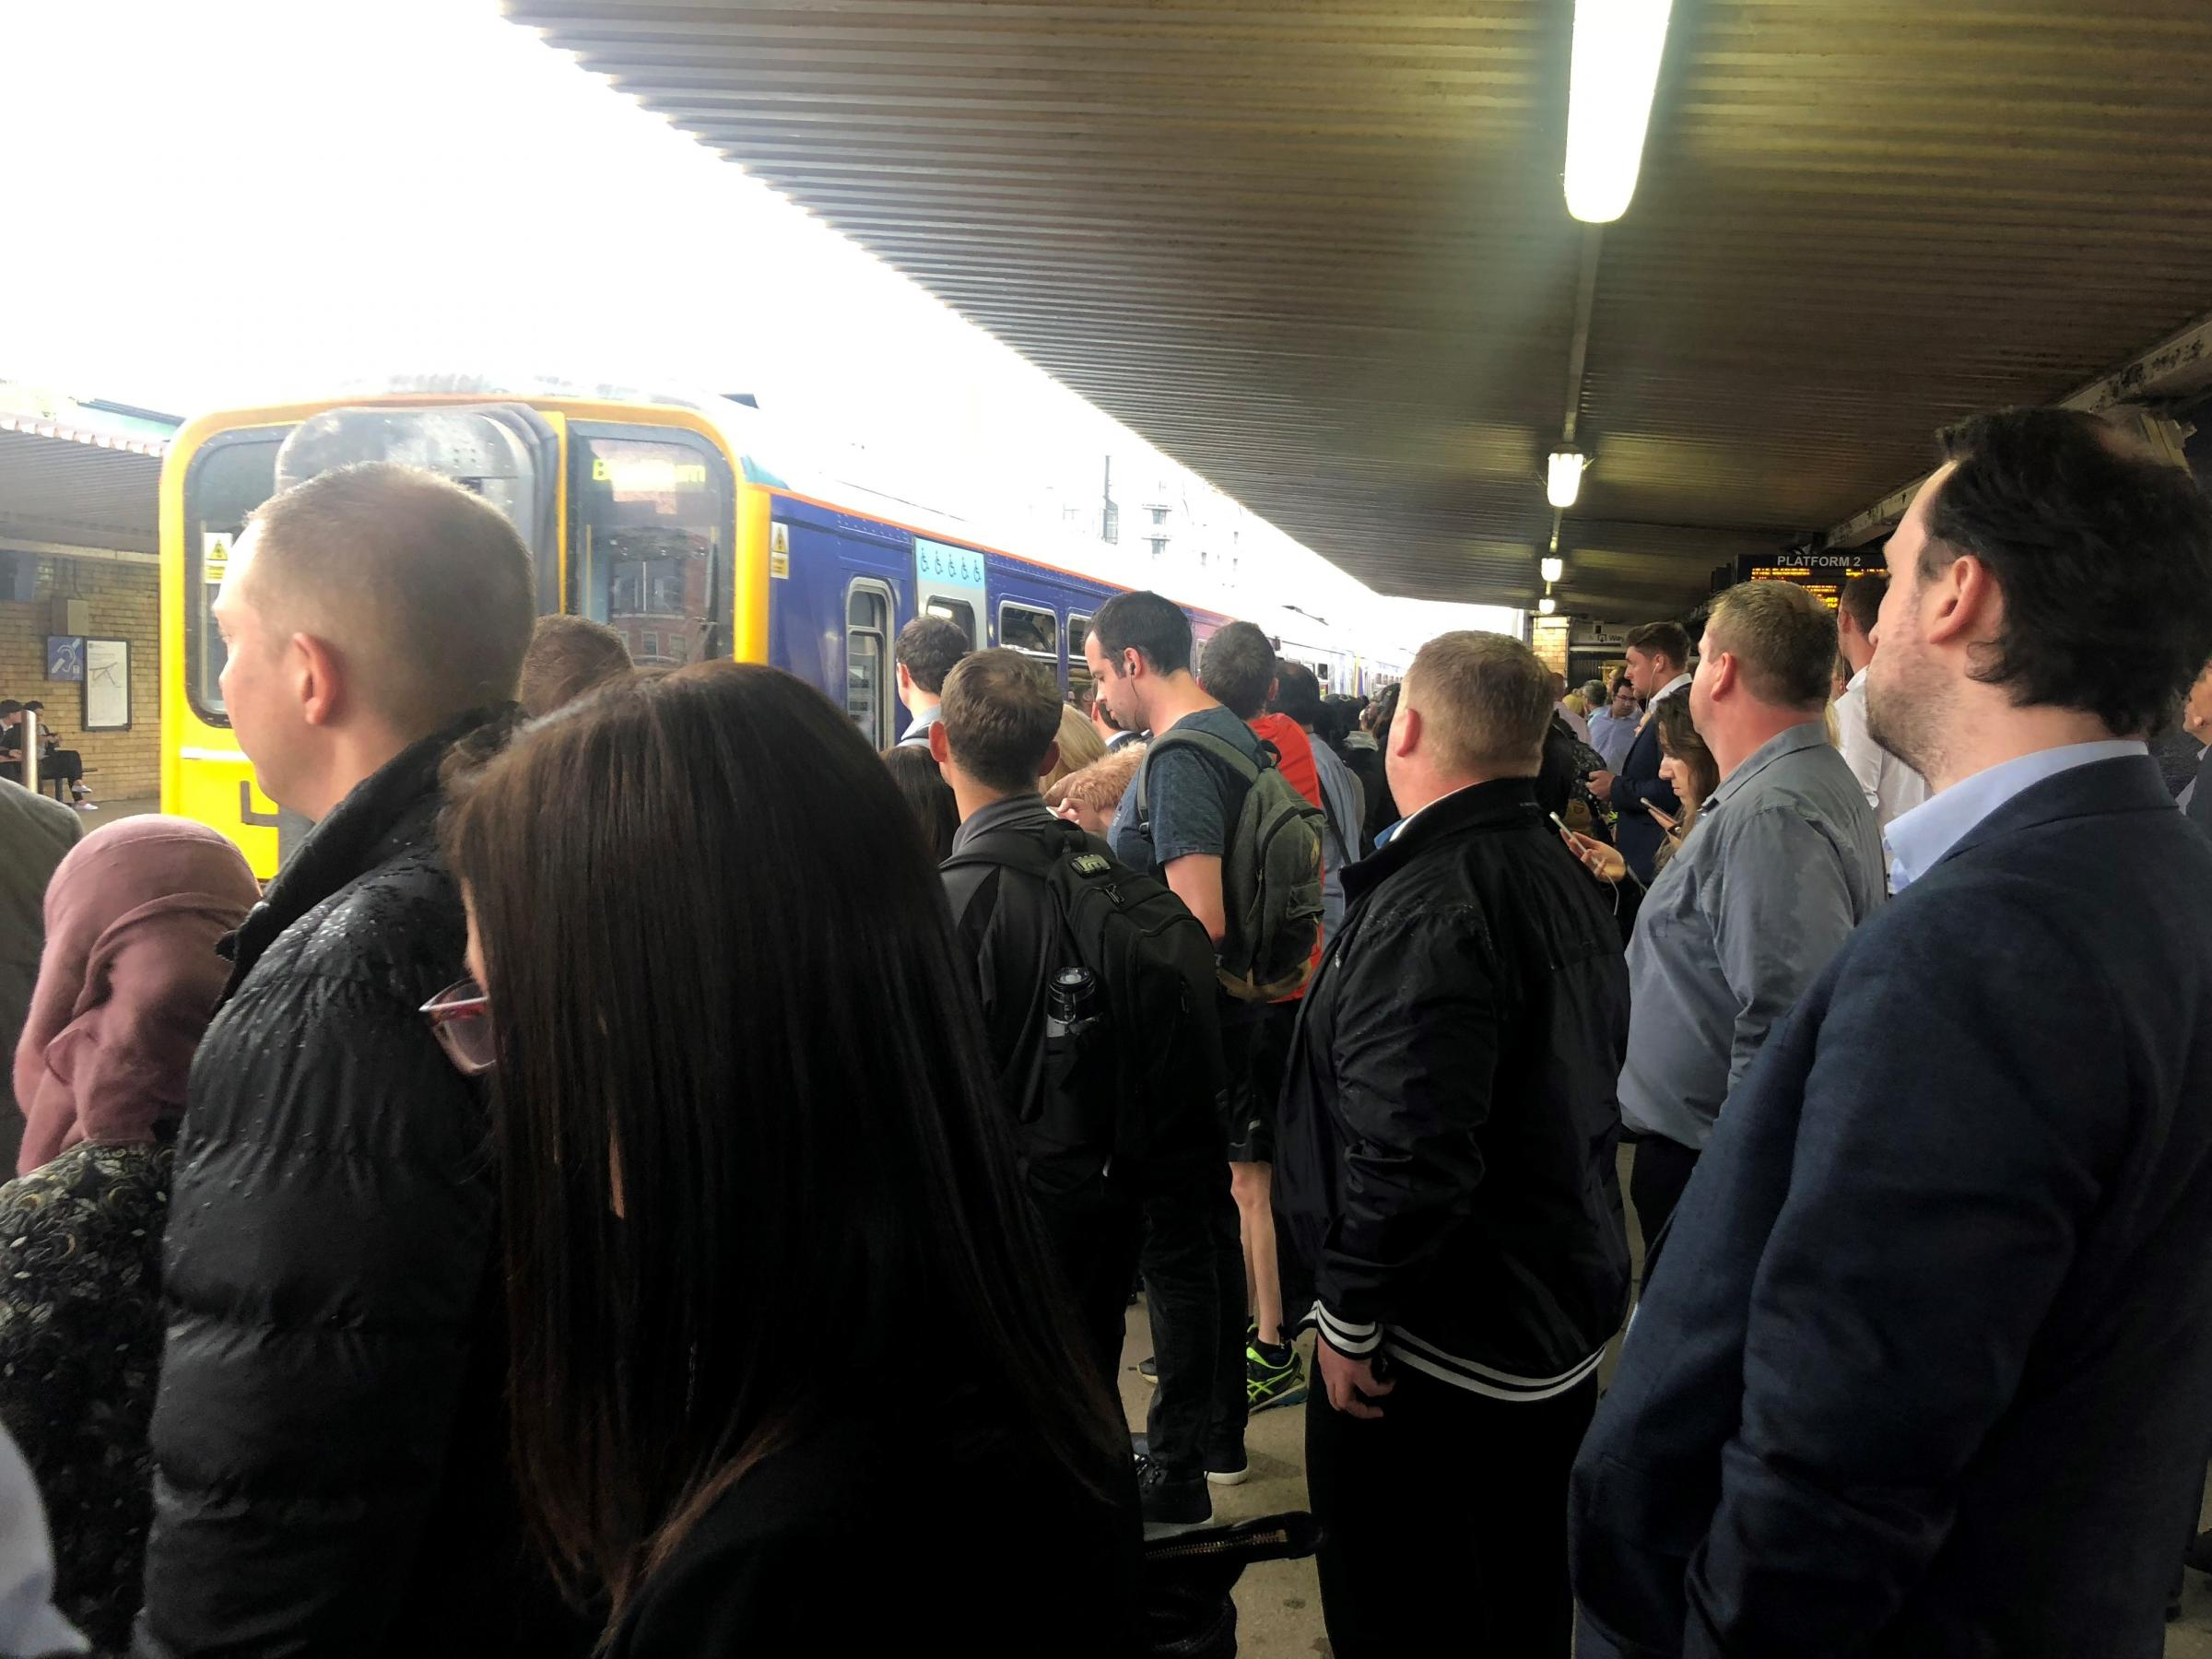 PACKED: Commuters trying to board a Northern train